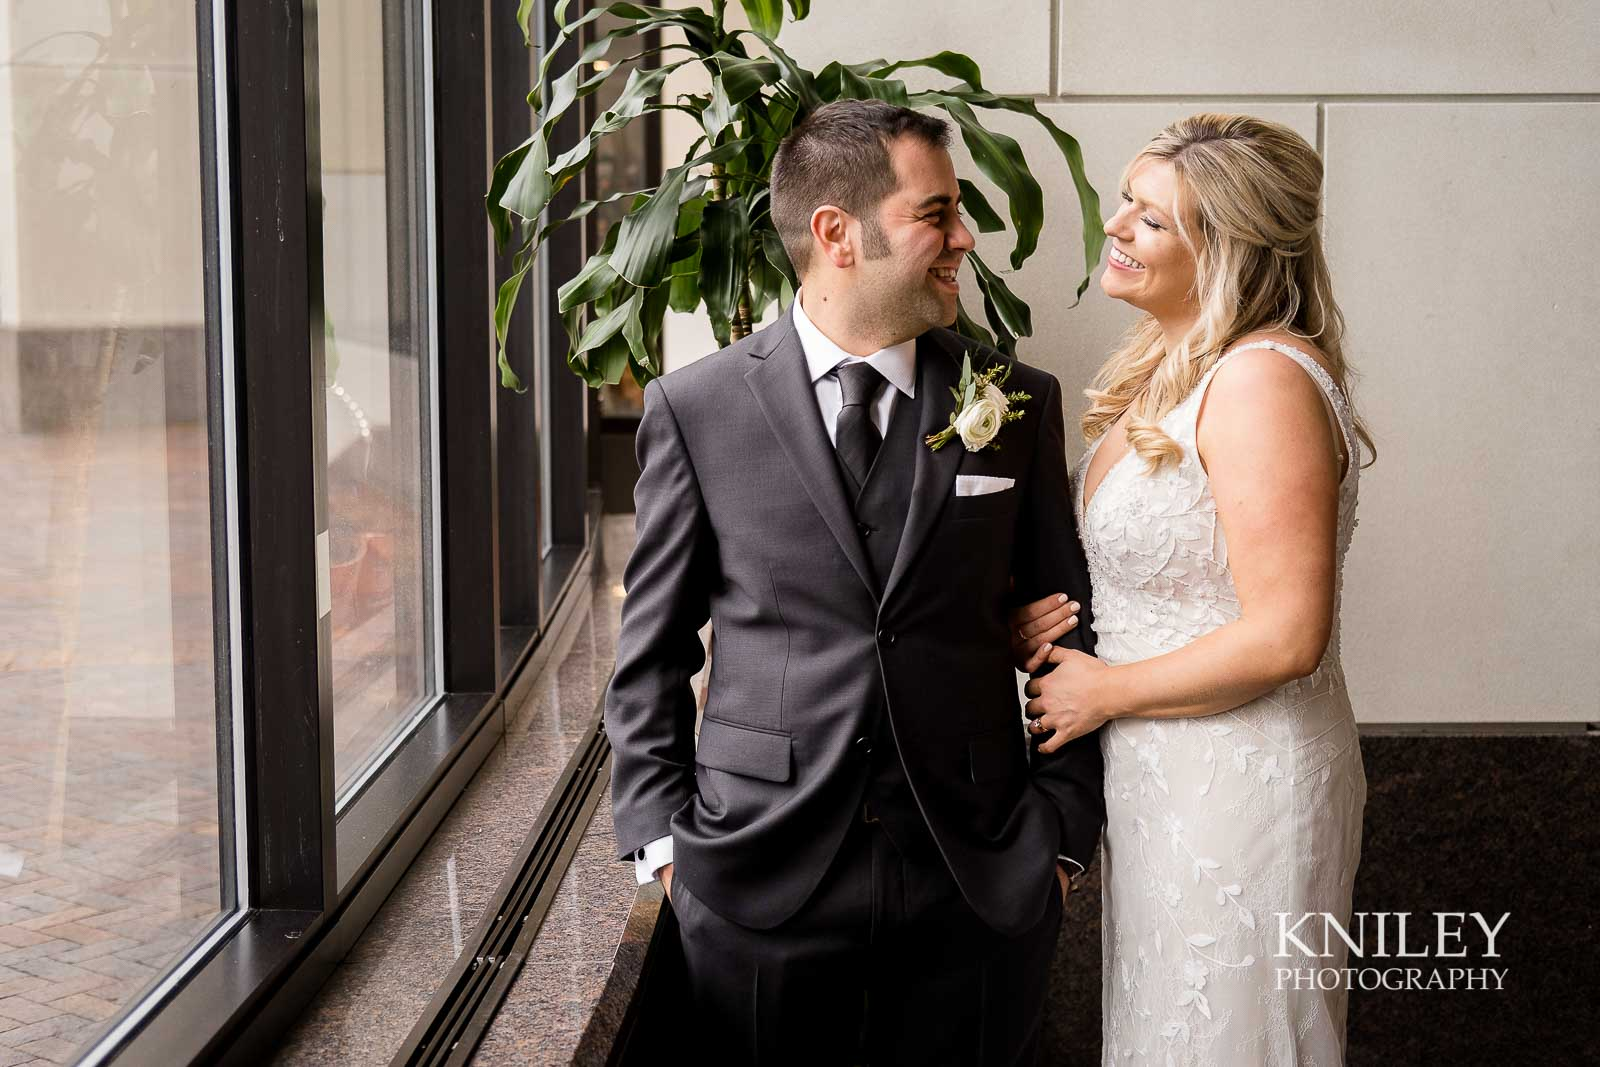 34-Max-of-Eastman-Wedding-and-Reception-Rochester-NY-Kniley-Photography.jpg